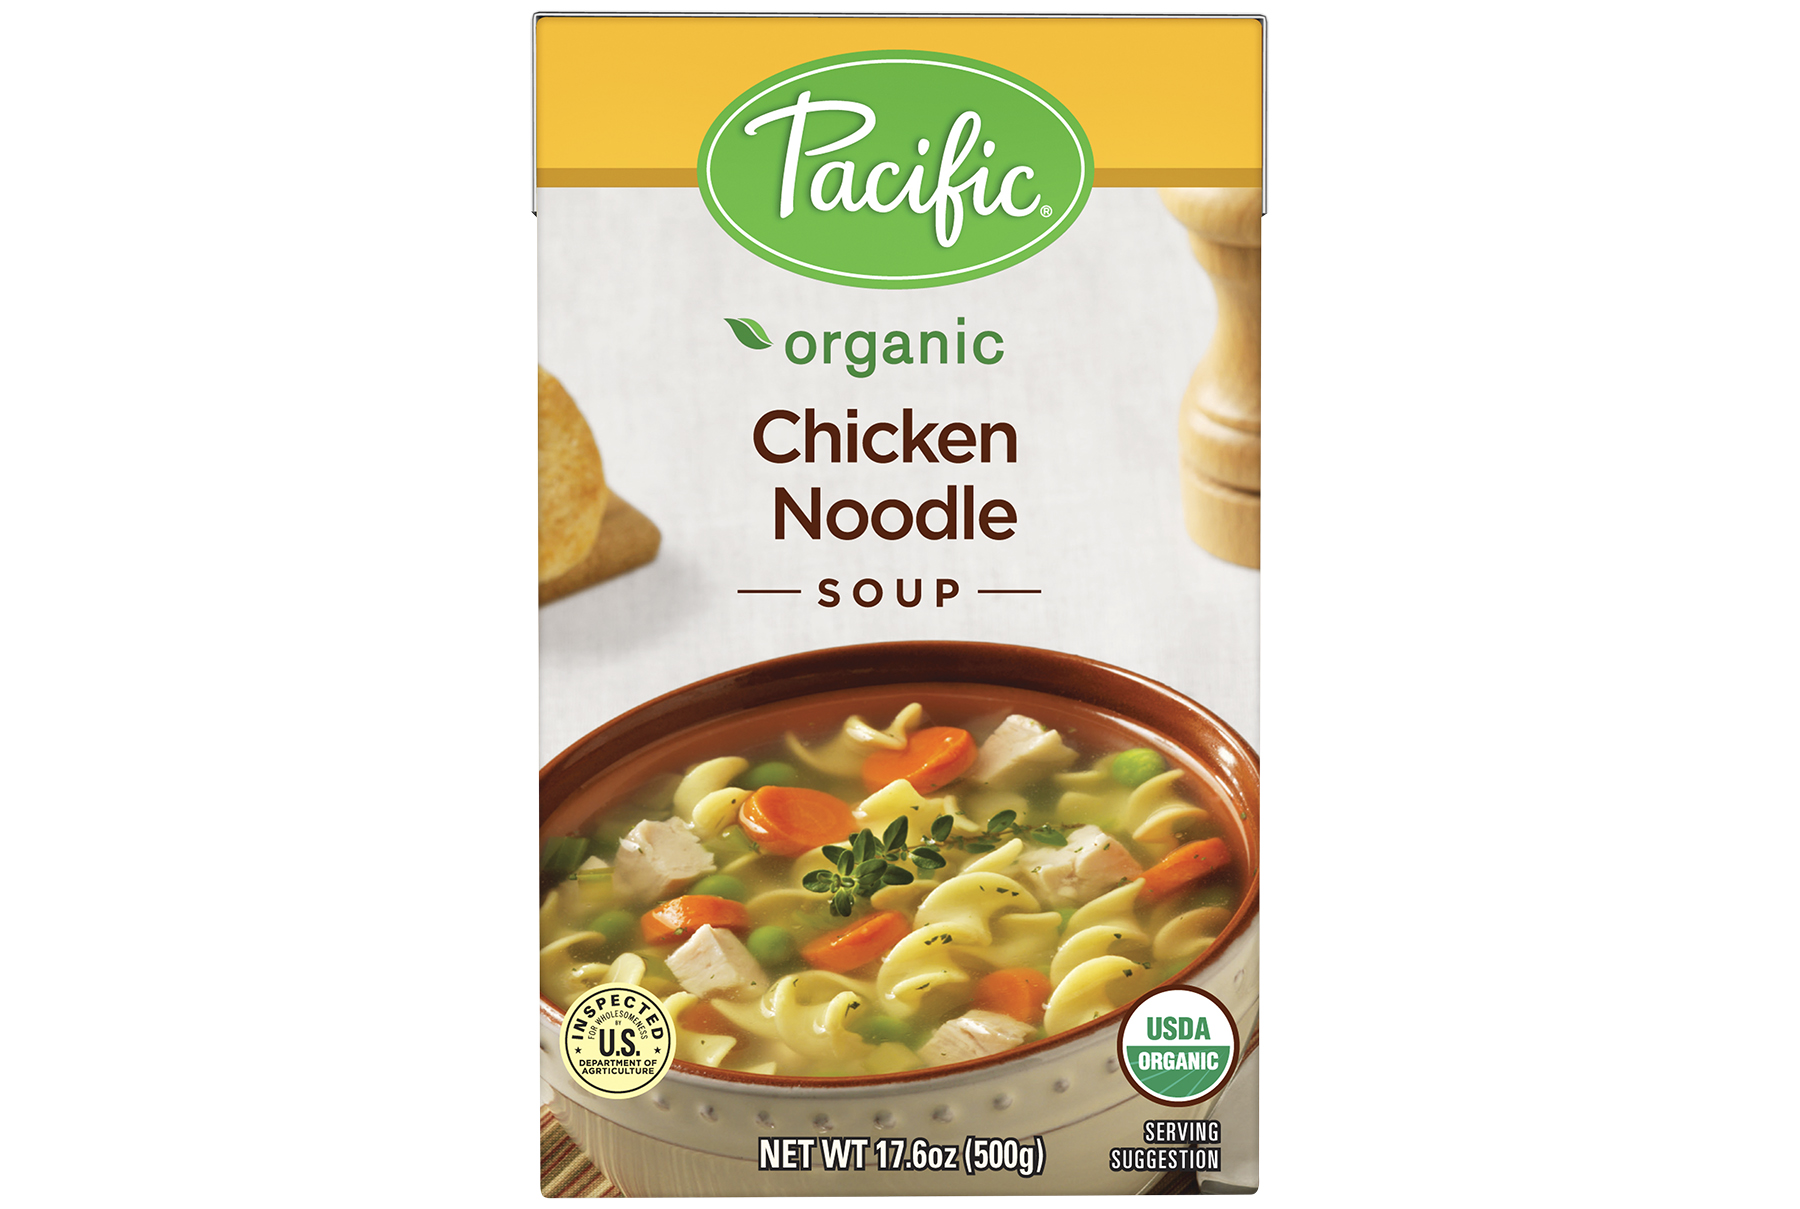 Pacific Foods Organic Chicken Noodle Soup